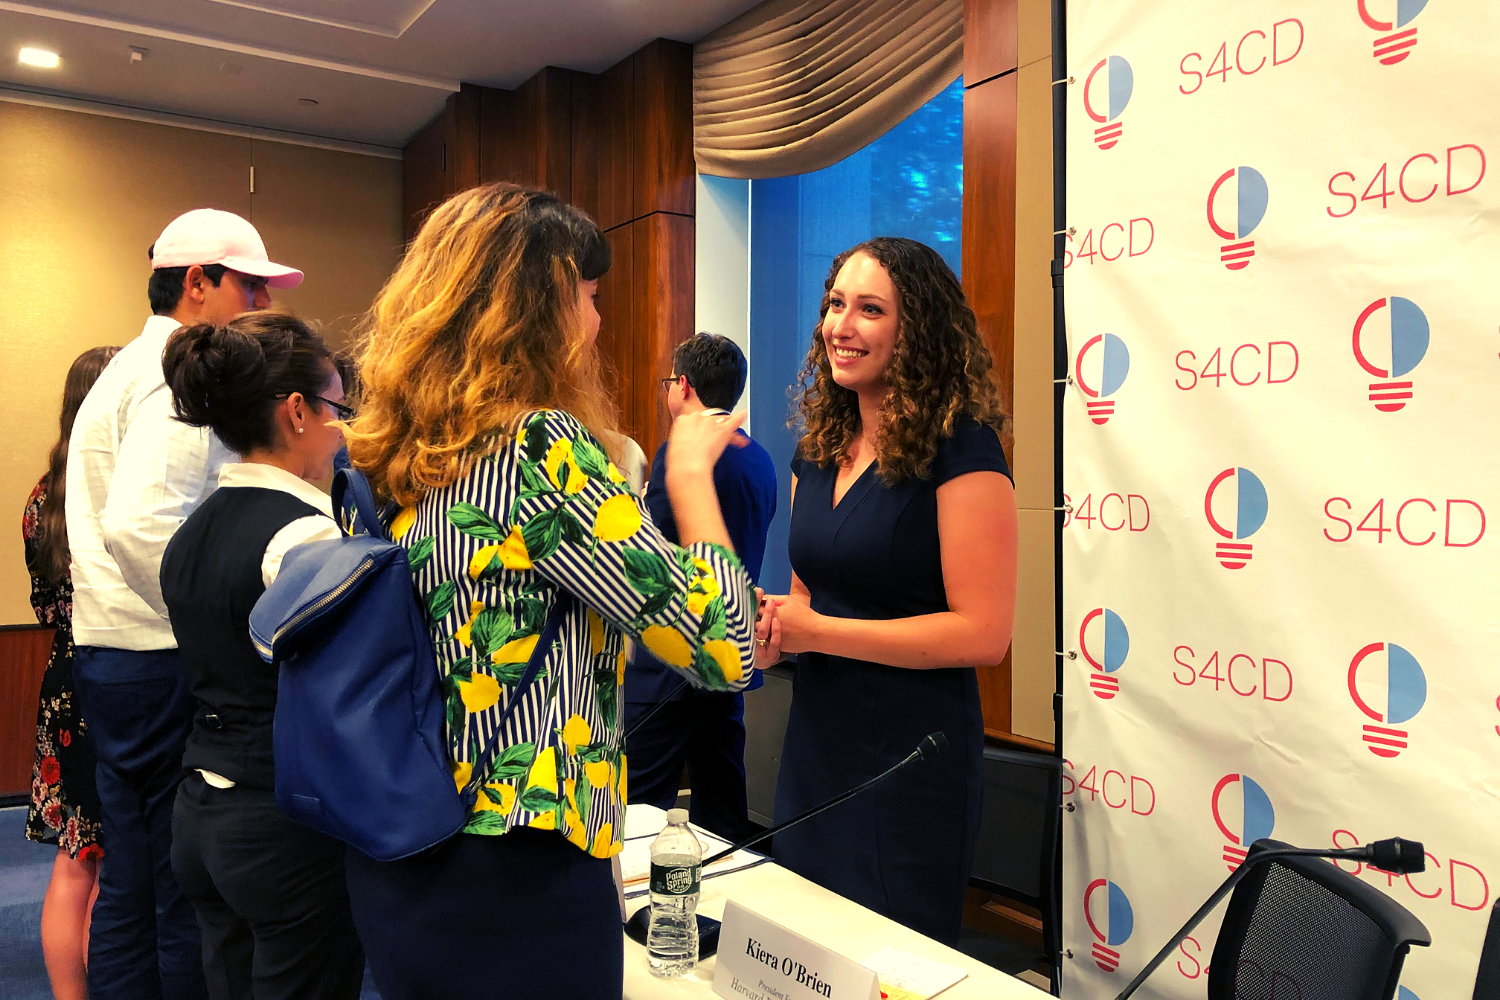 Our VP Kiera O'Brien interacting with attendees after the Congressional briefing.